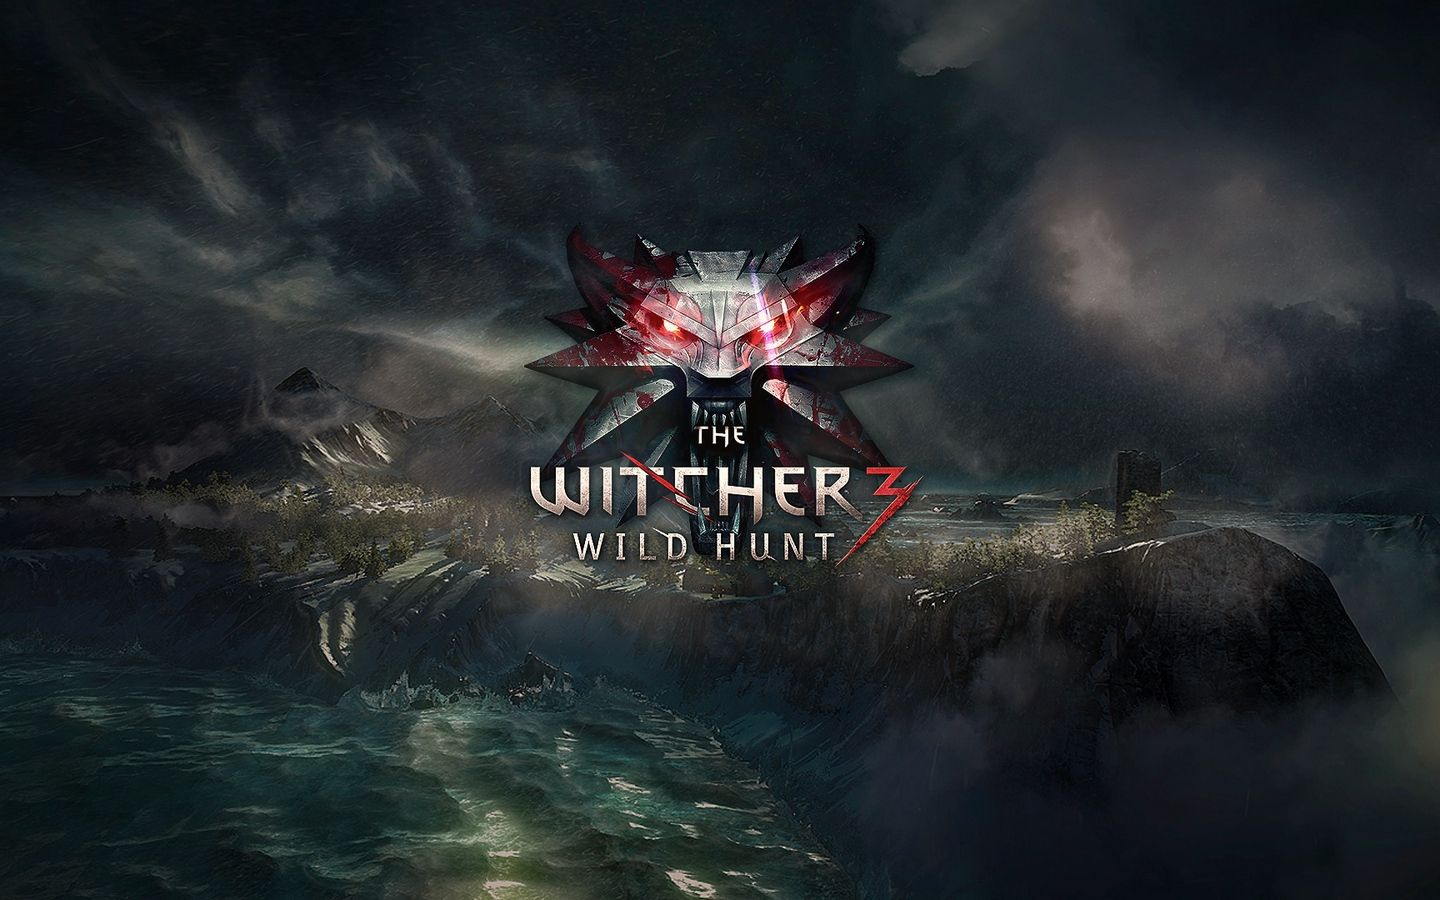 Minimalistic Witcher 3 Wallpaper 1080p Firefox Wallpaper Free Download Wallpapers Desktop The Witcher The Witcher 3 Wild Hunt